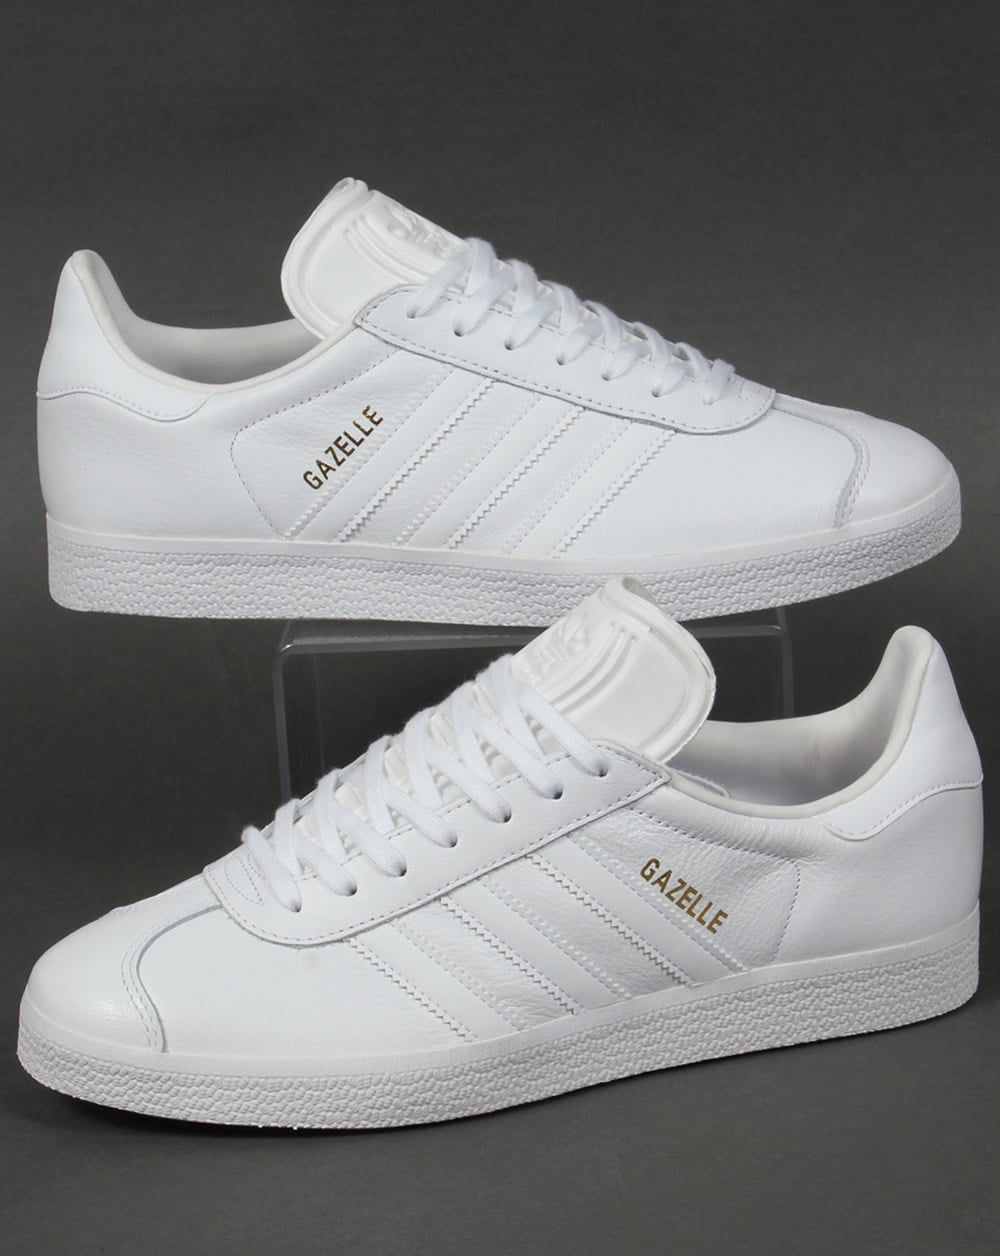 save off 2d9a8 189c4 Adidas Gazelle Leather Trainers in White